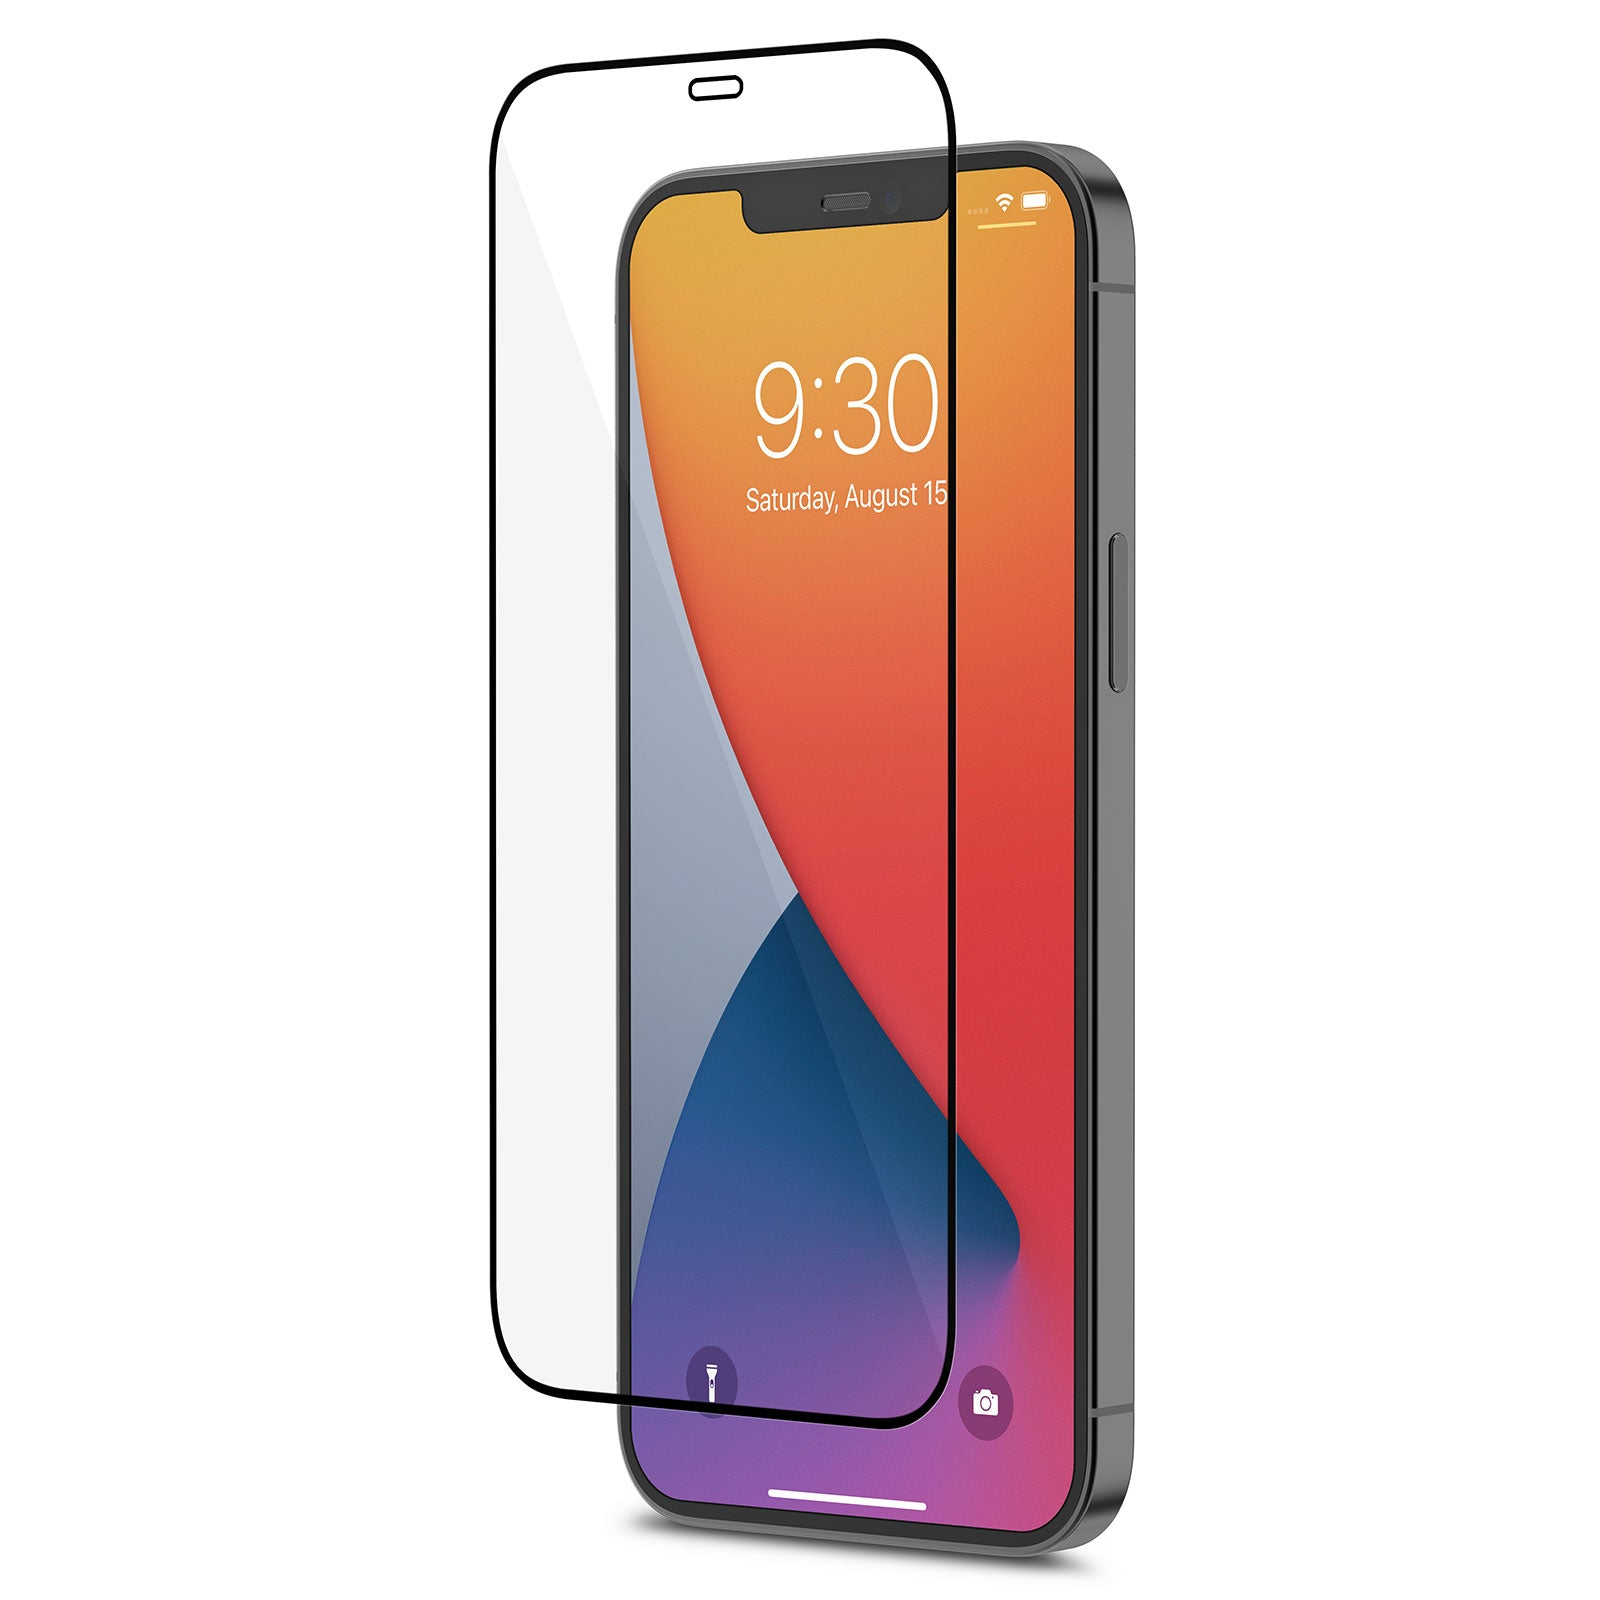 Moshi AirFoil Pro Glass Screen Protector For iPhone 12 Pro Max